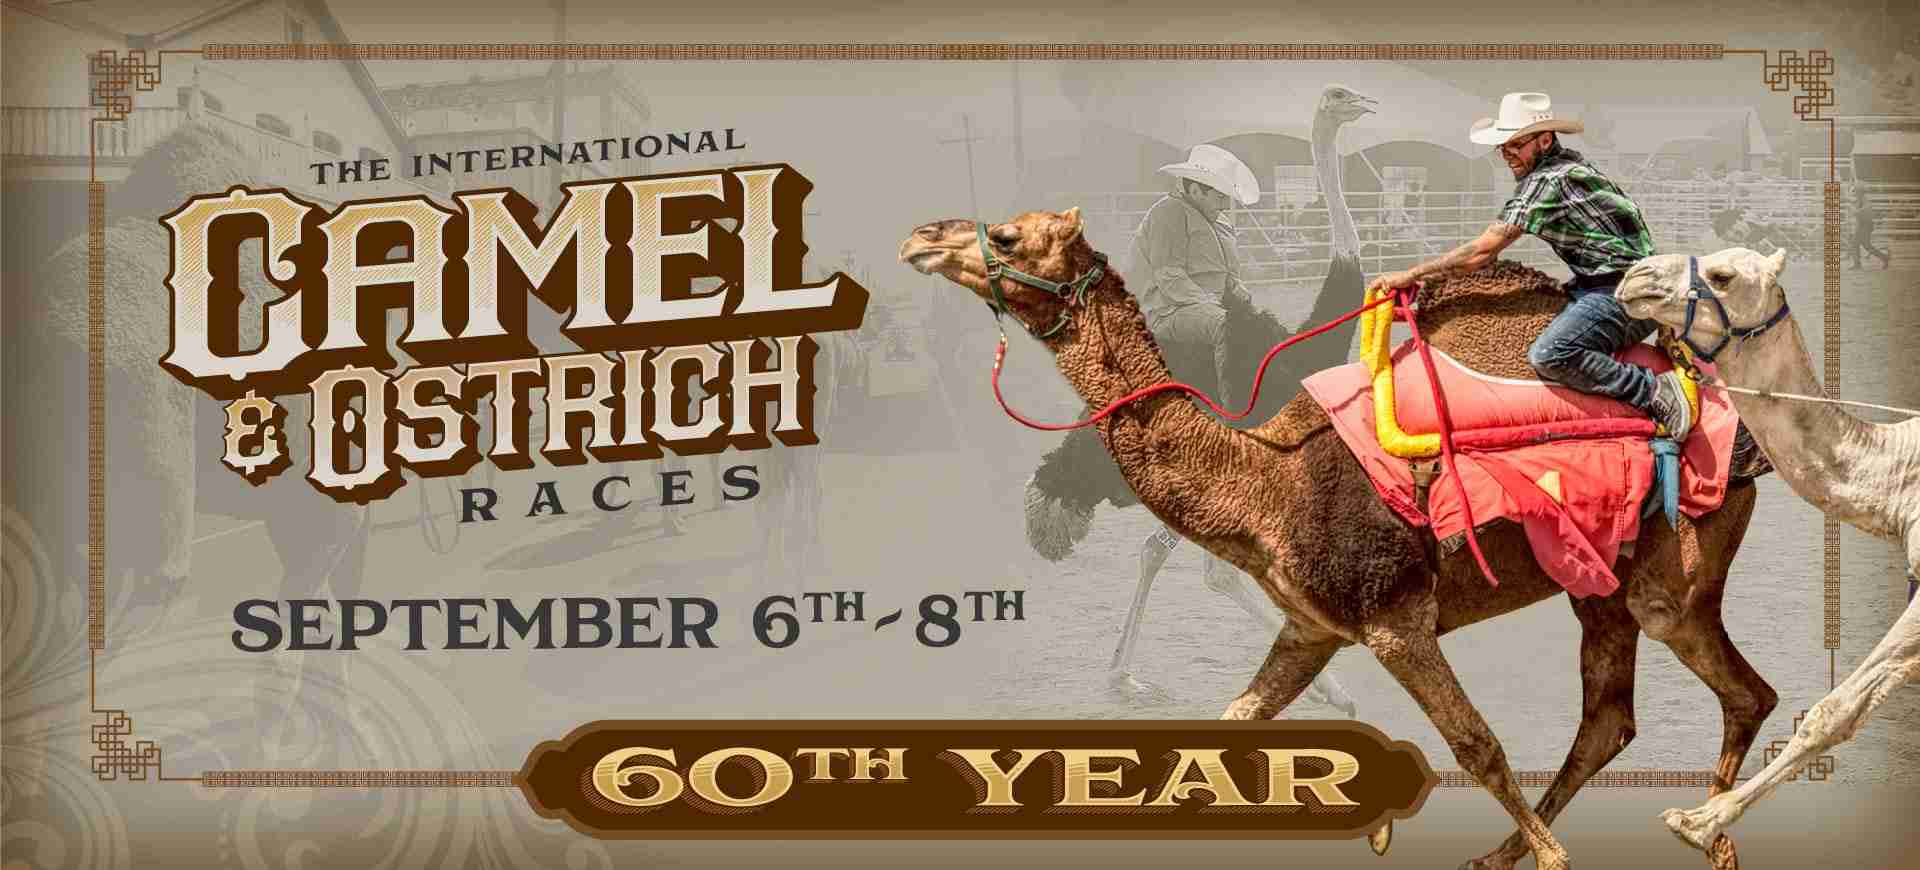 20129Camel & Ostrich Races 60th Year